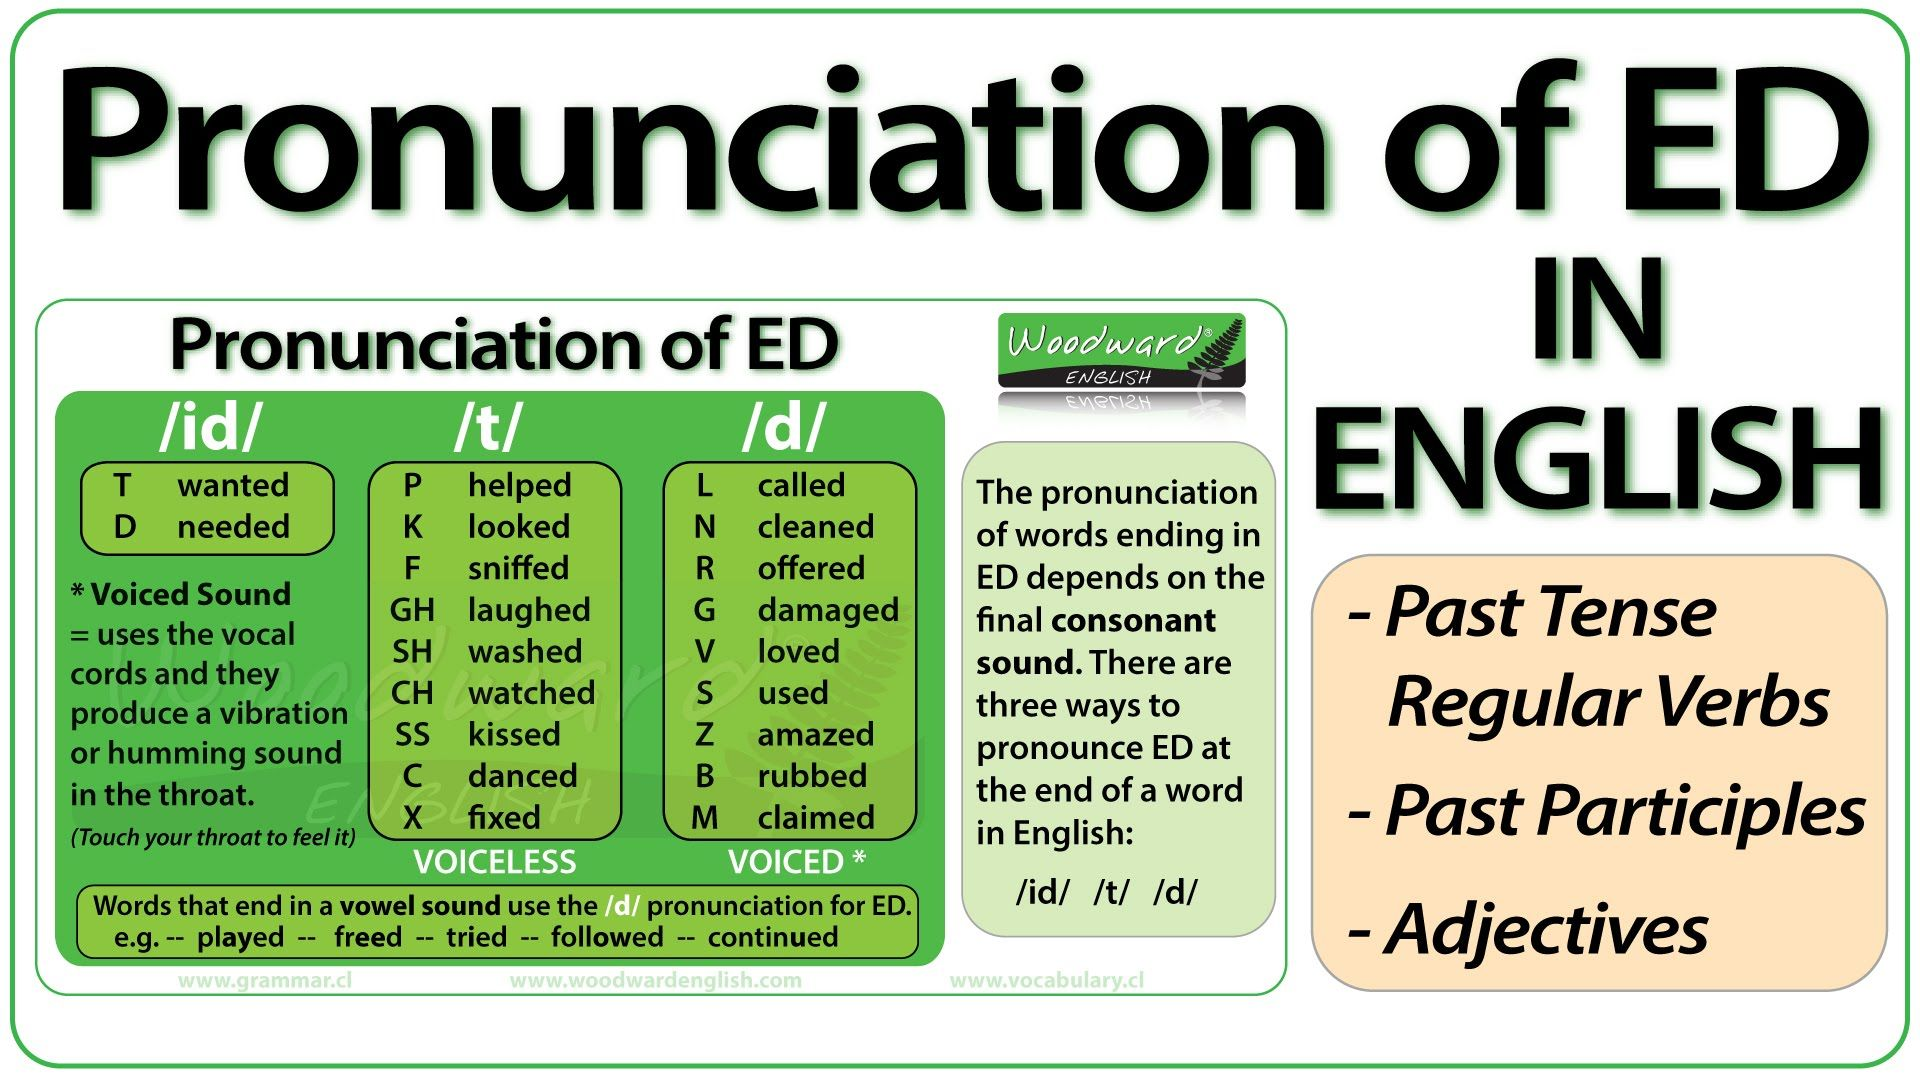 Ed Pronunciation In English